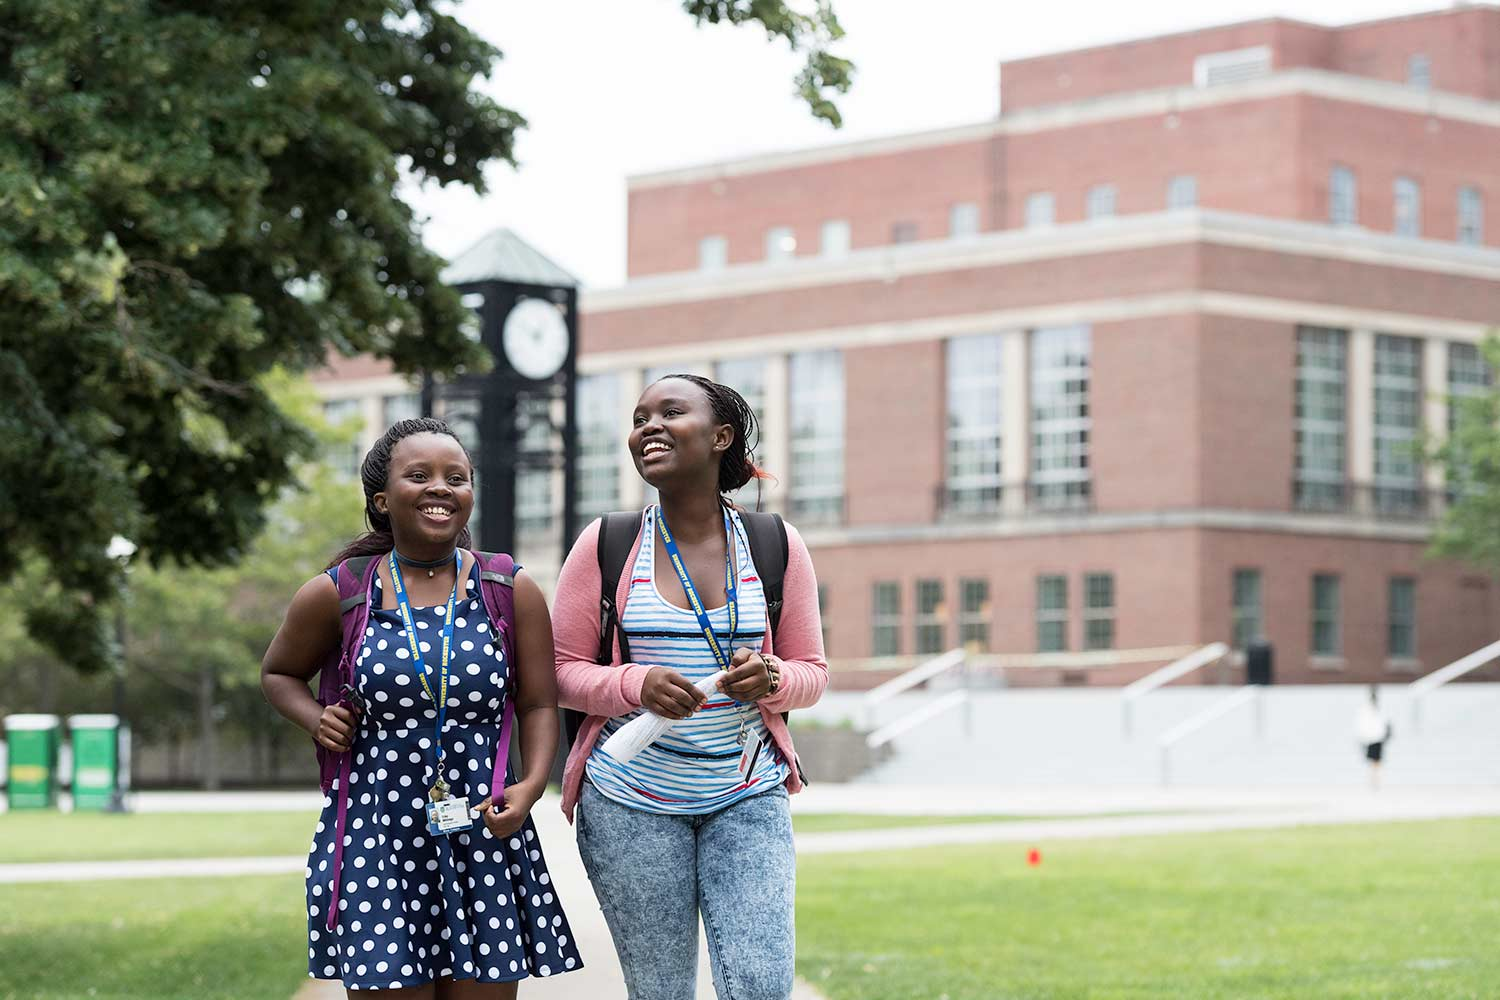 Two students smiling and walking outside at University of Rochester